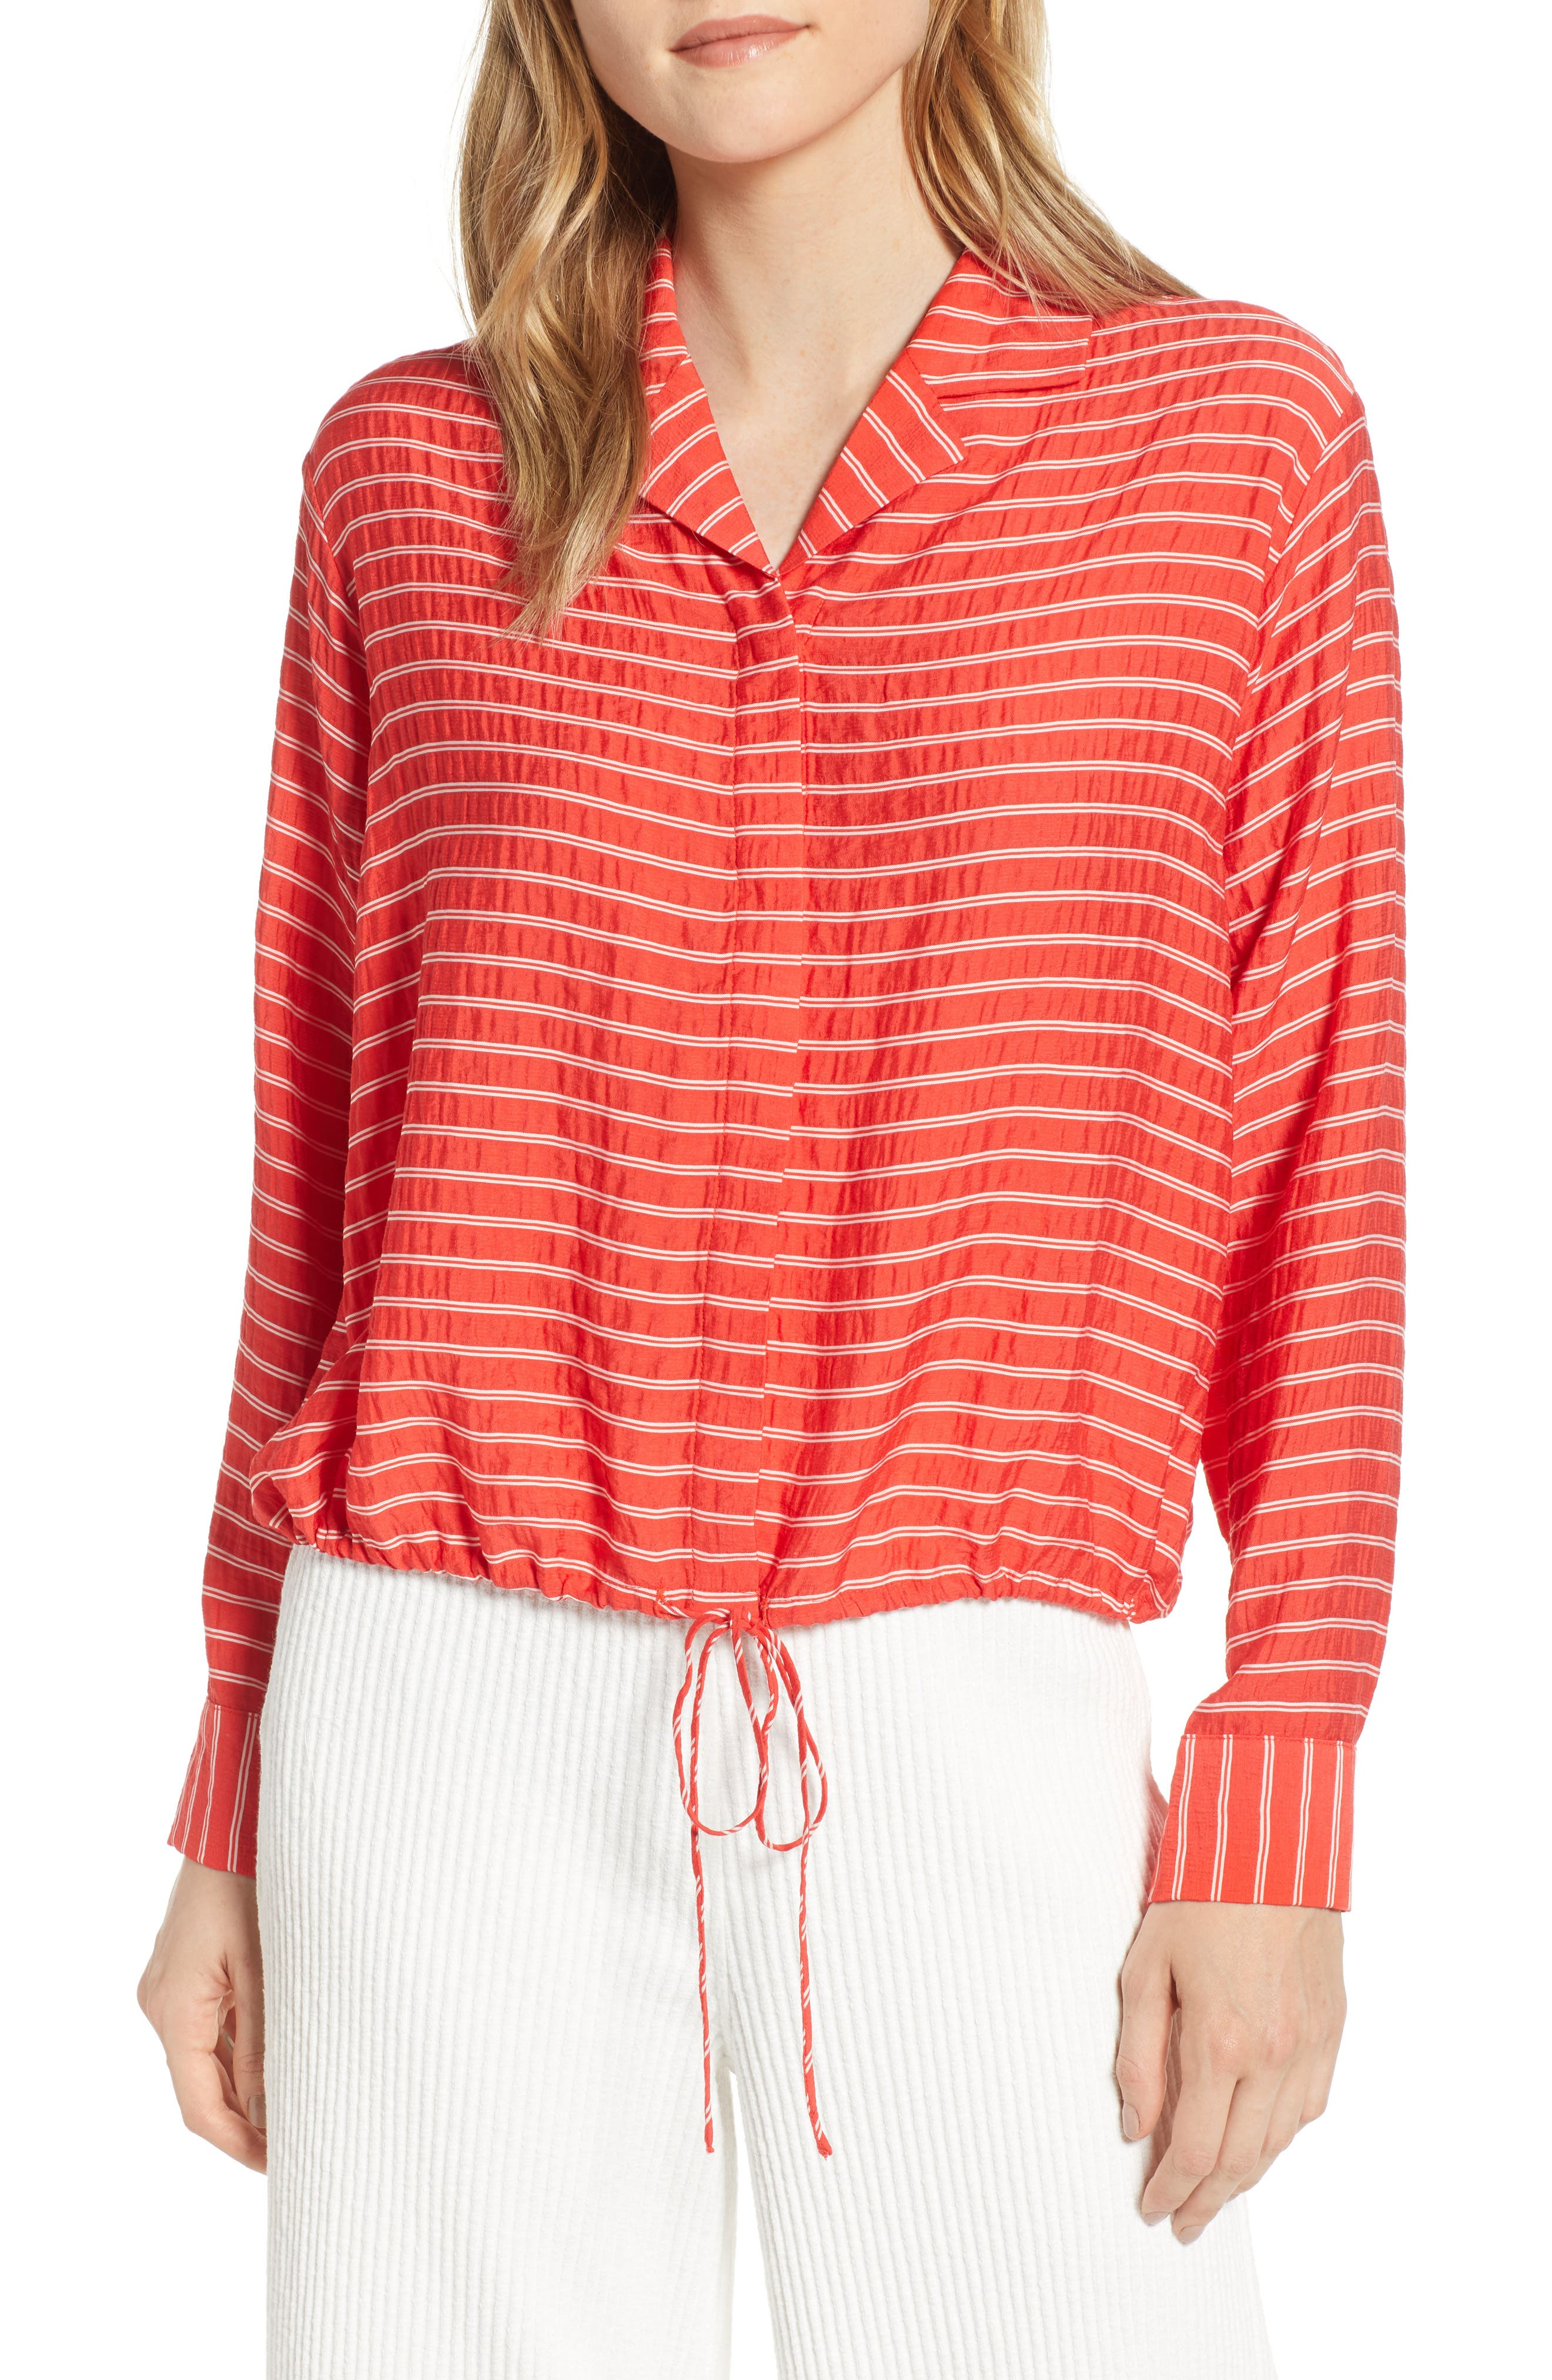 LOU & GREY Sunny Stripe Drawstring Waist Blouse, Main, color, 600